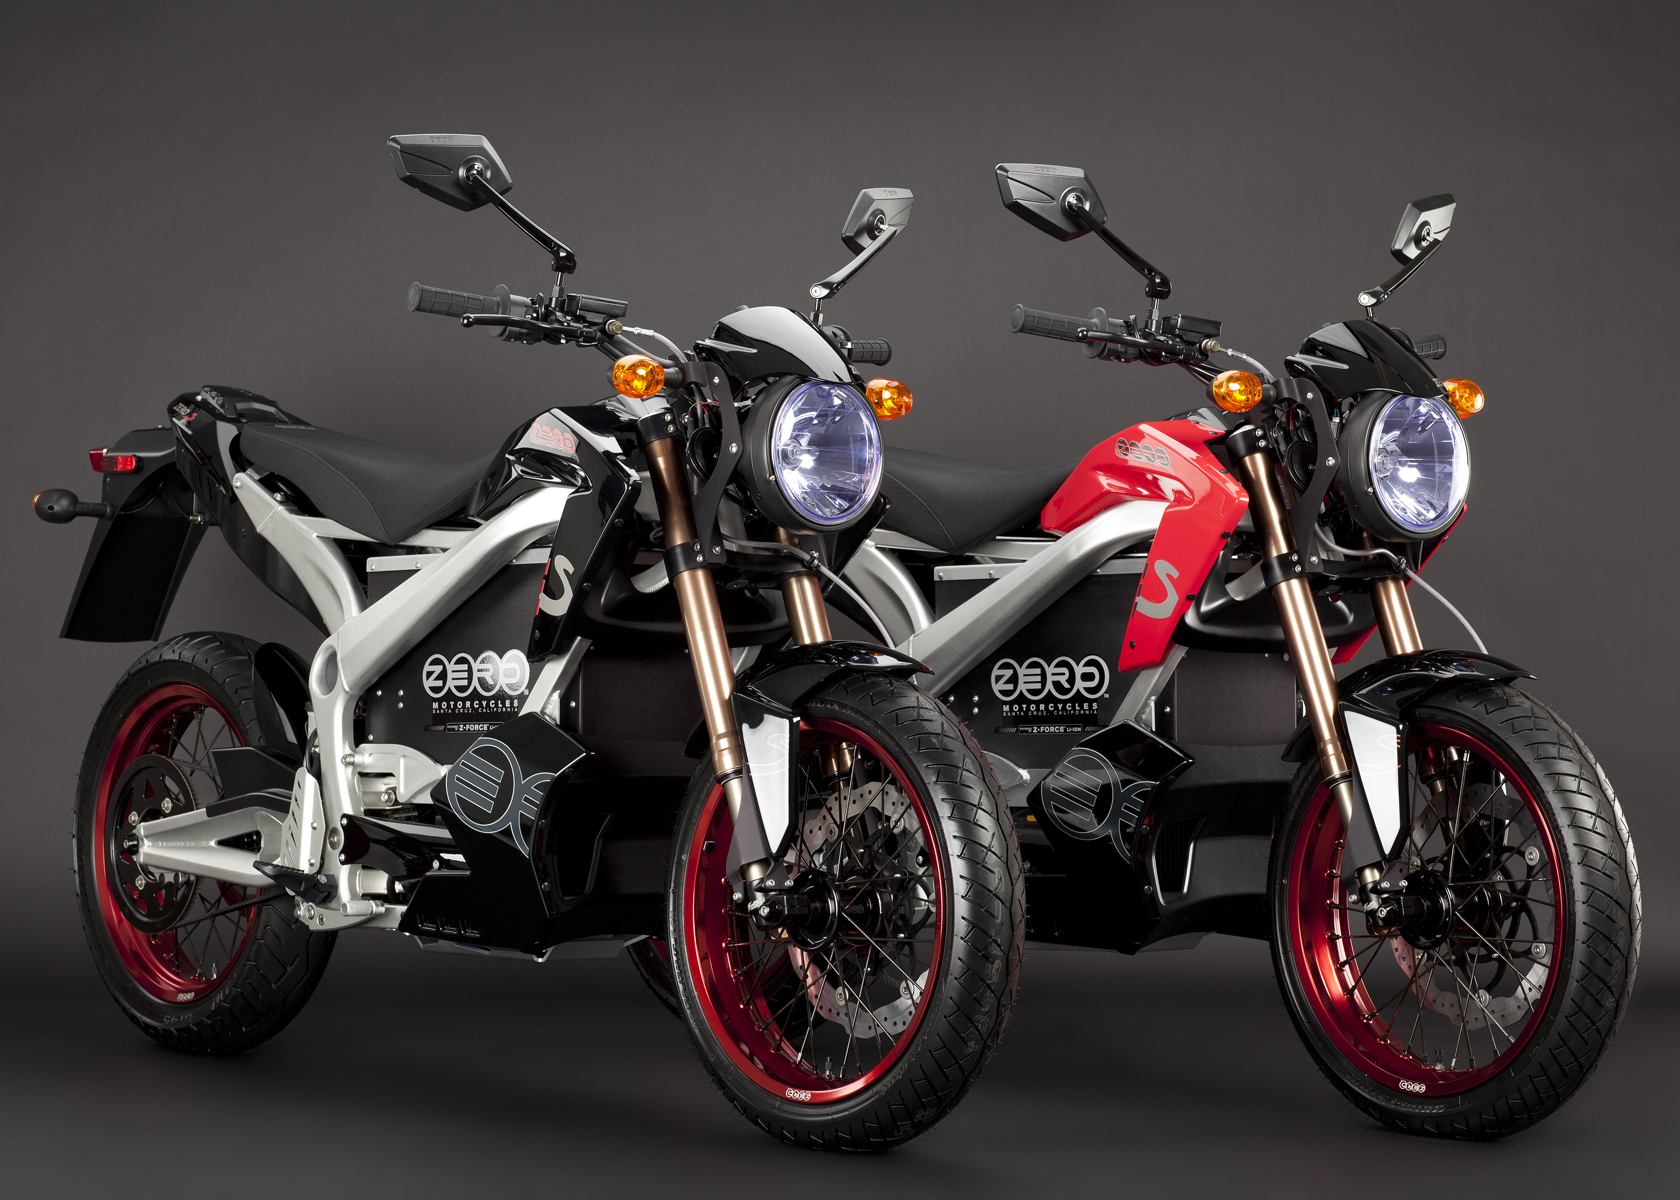 '.2011 Zero S Electric Motorcycle: Pair, Black and Red.'